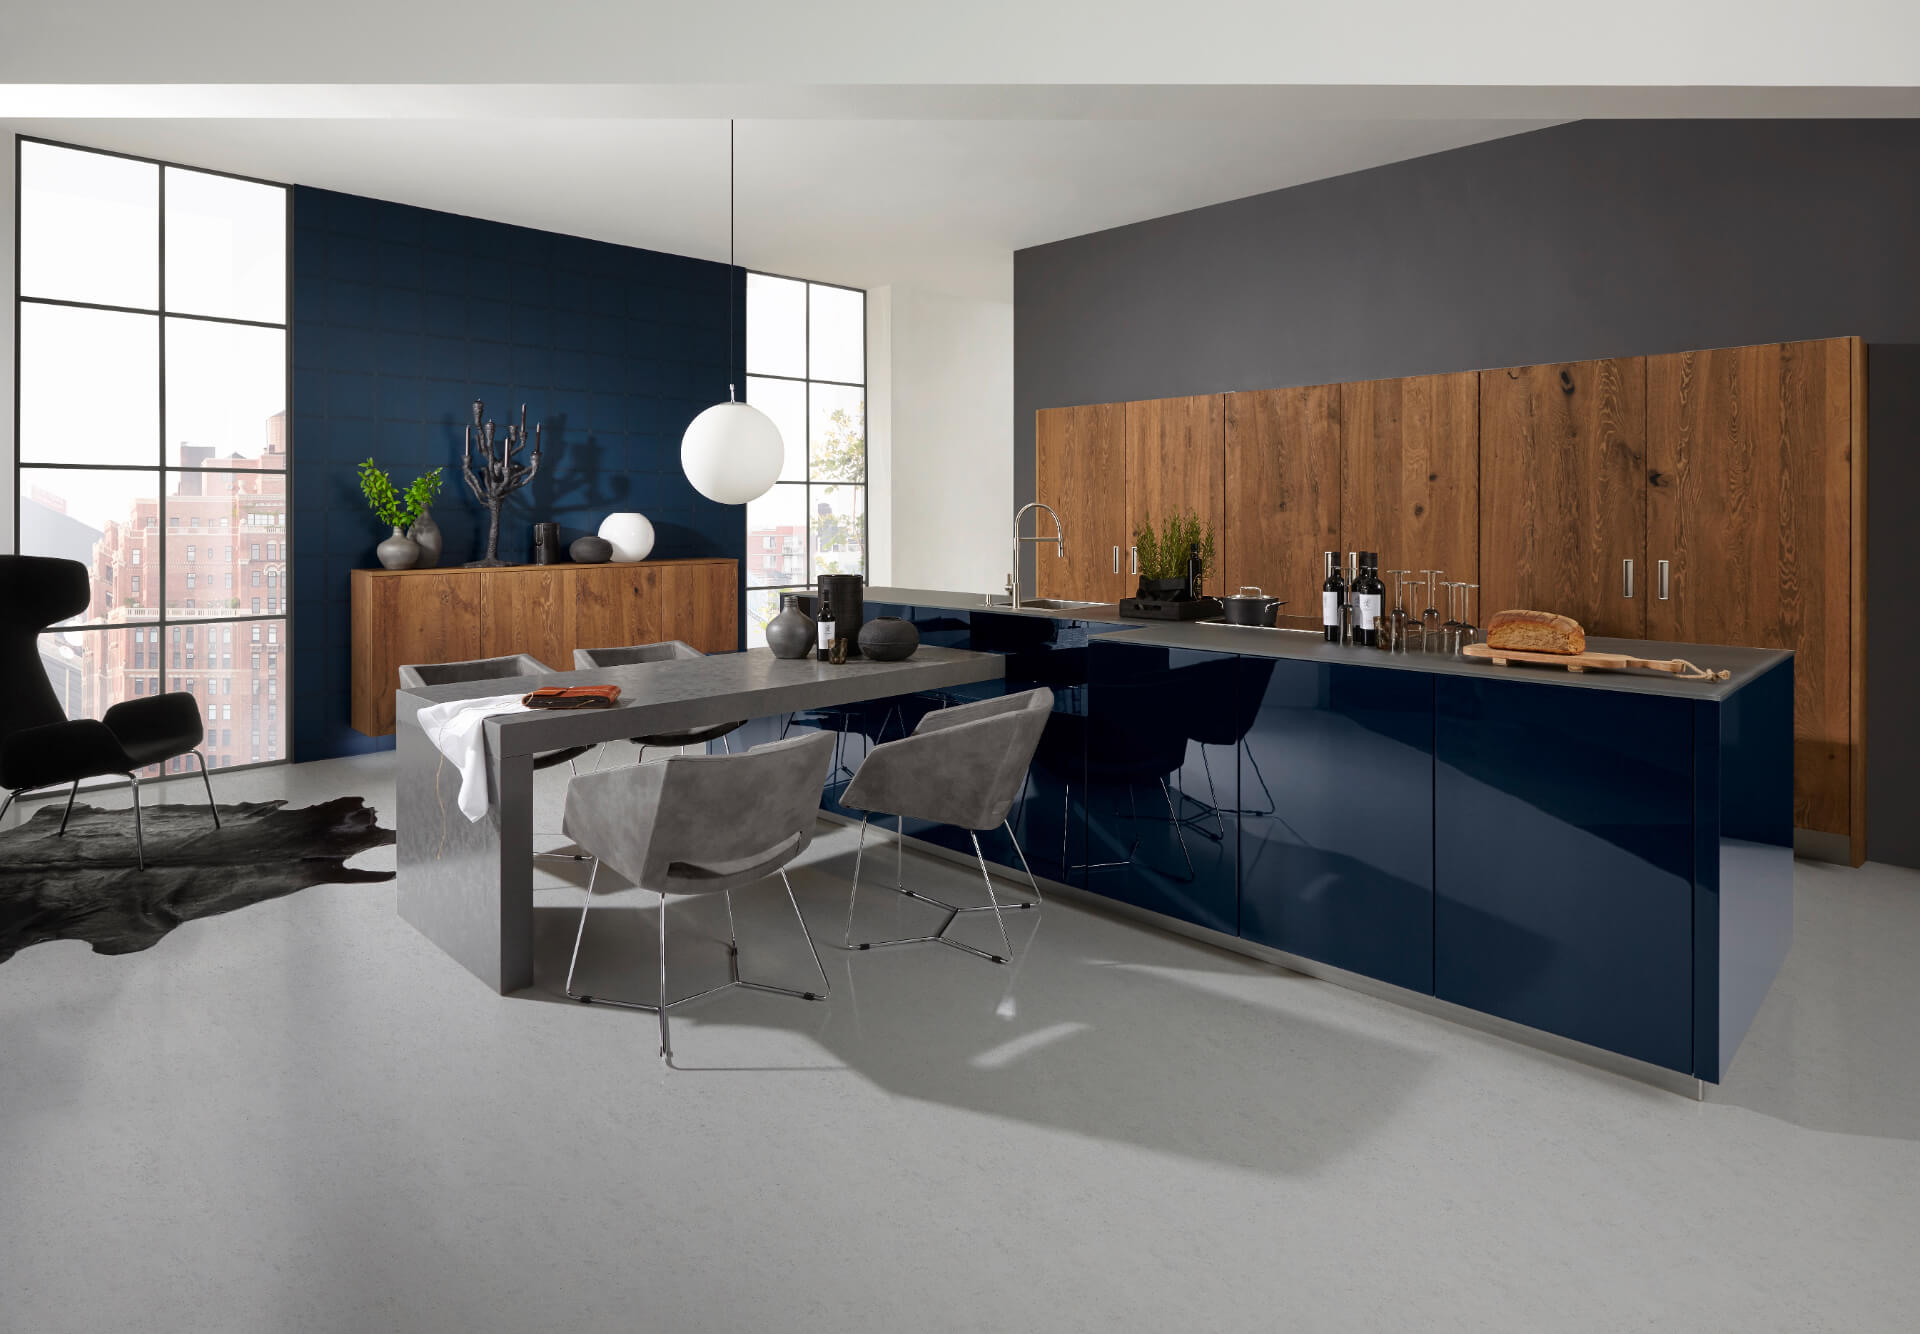 Nolte Nova Lack Wooden Kitchen